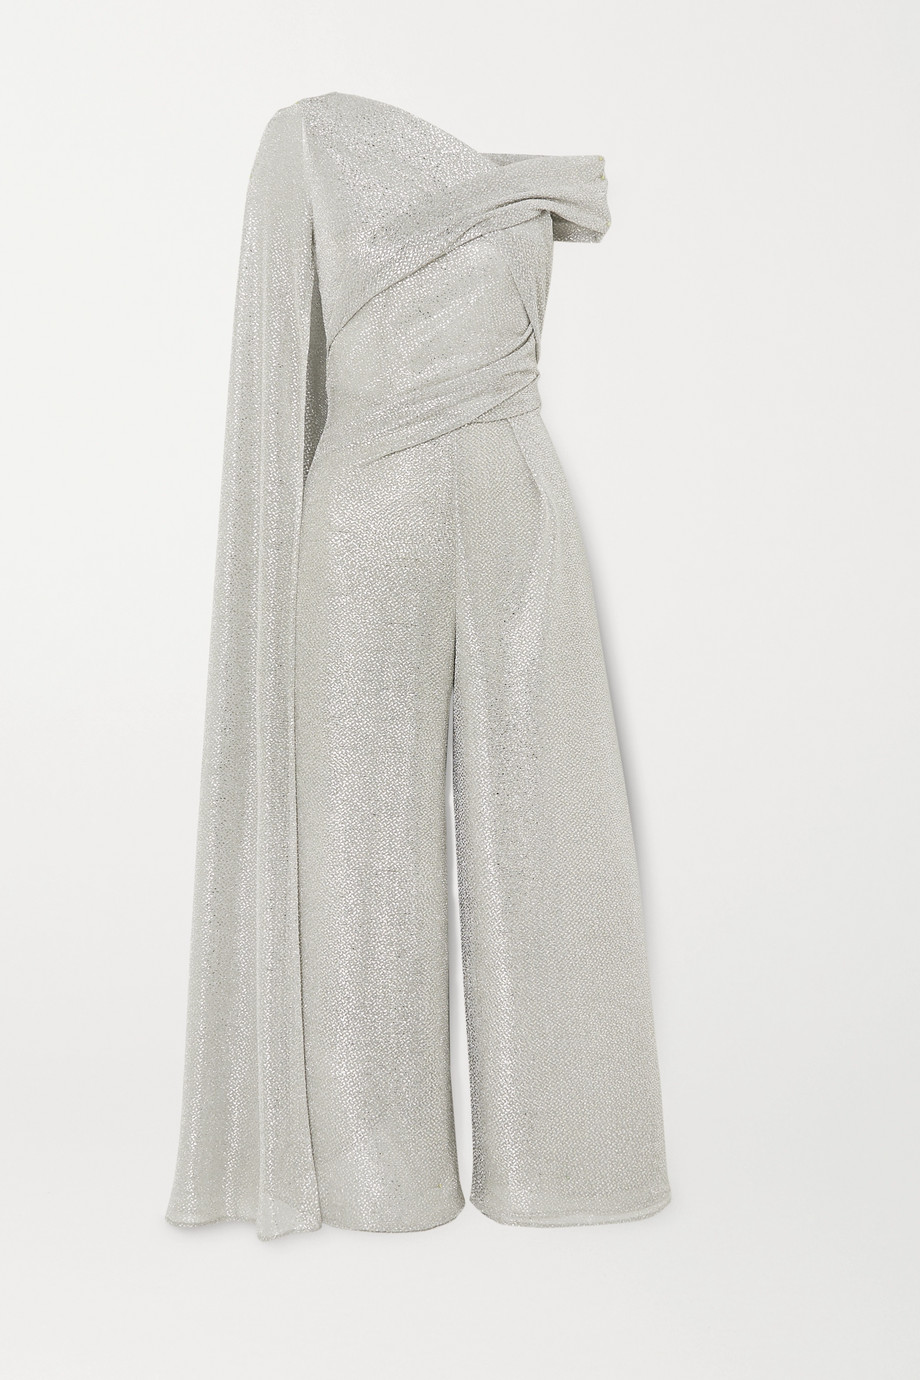 Talbot Runhof Sina draped cape-effect metallic voile jumpsuit